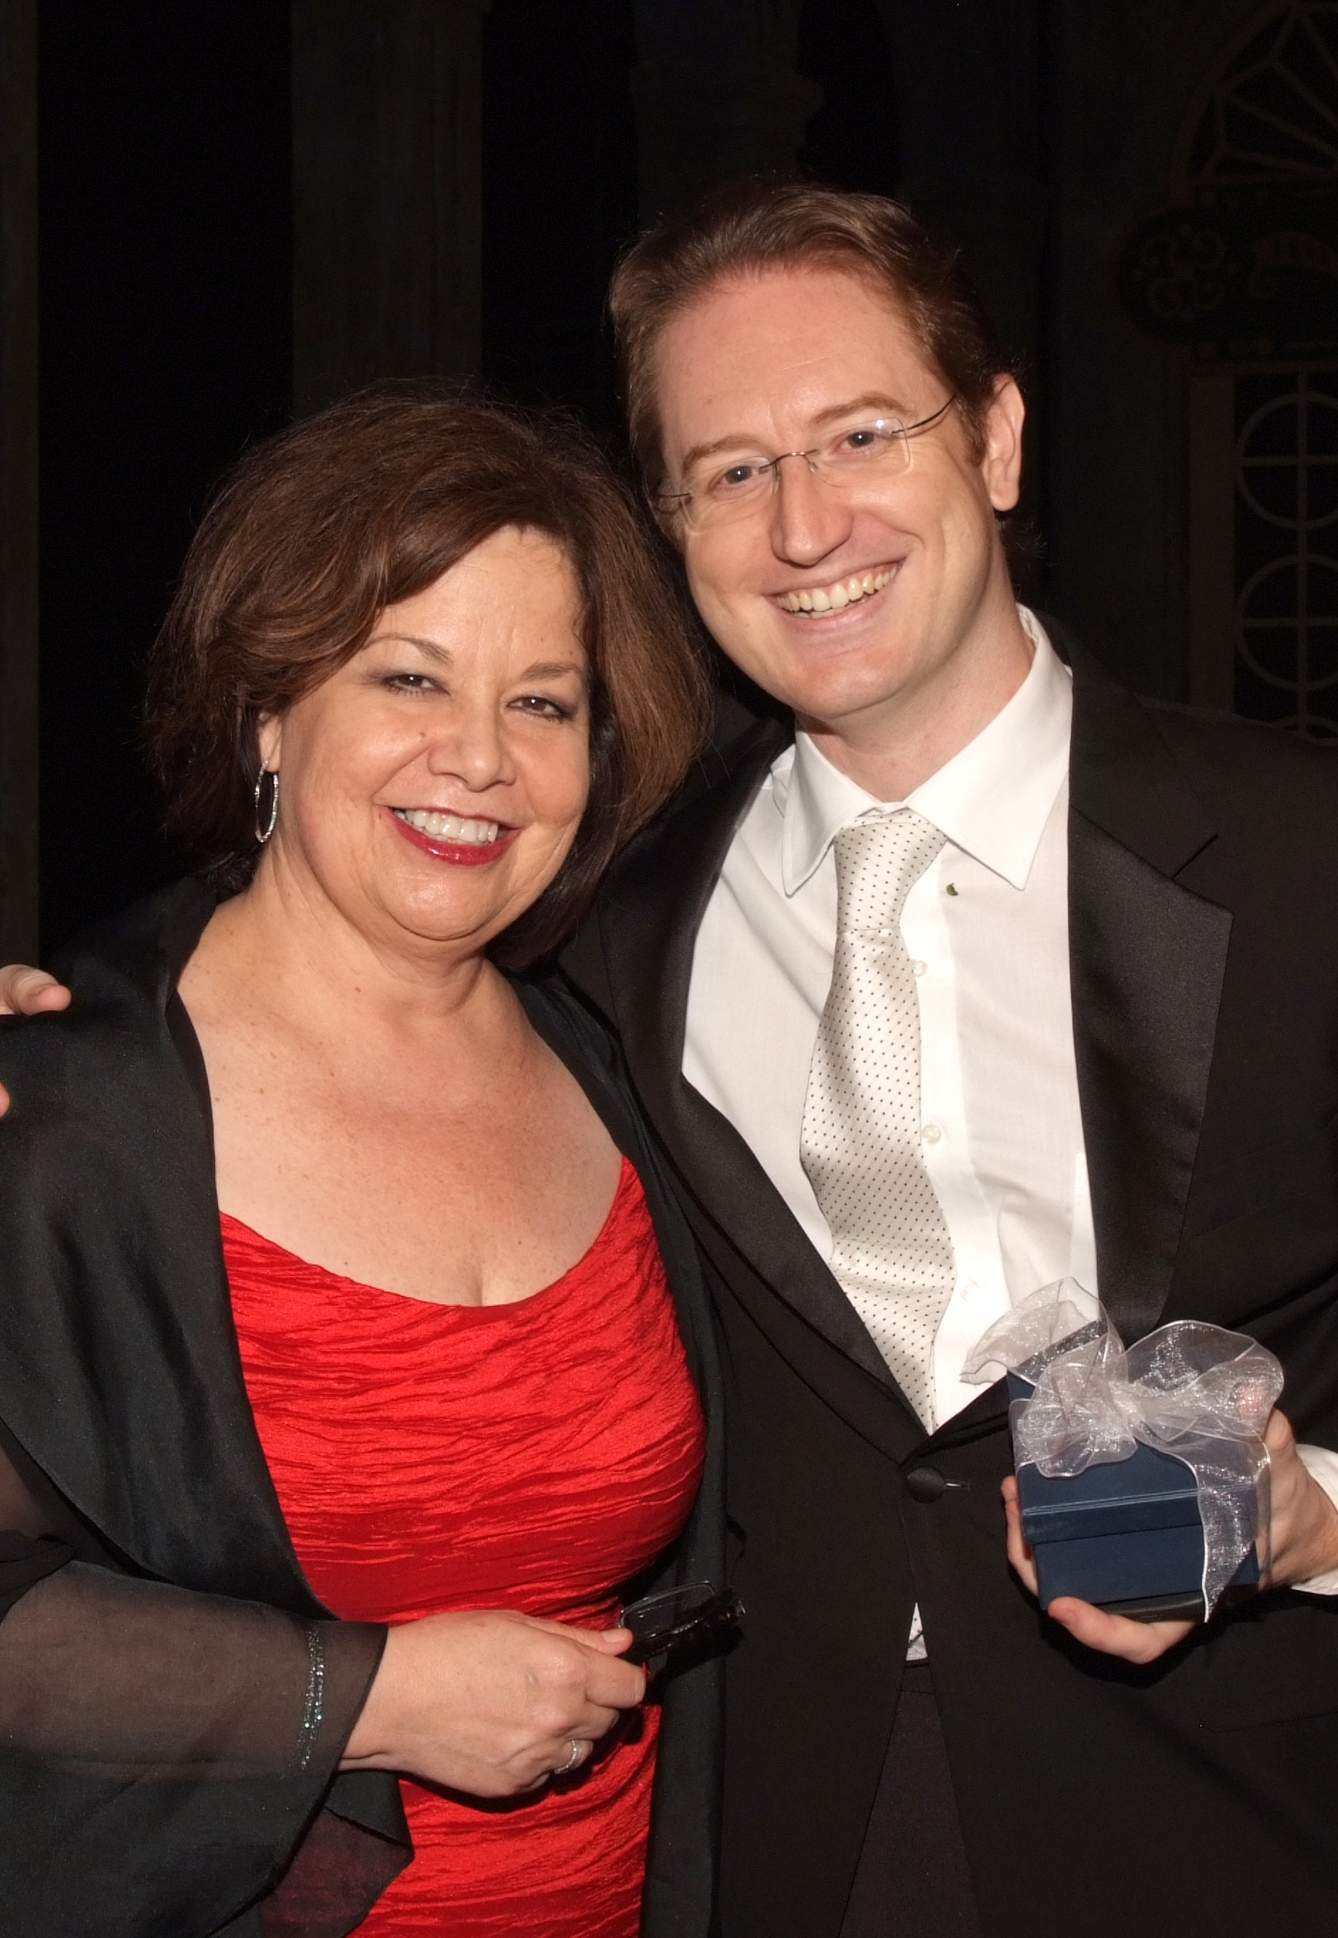 Susan T. Danis with Maestro Ramon Tebar at Florida Grand Opera's annual gala, Nov. 17, 2012.